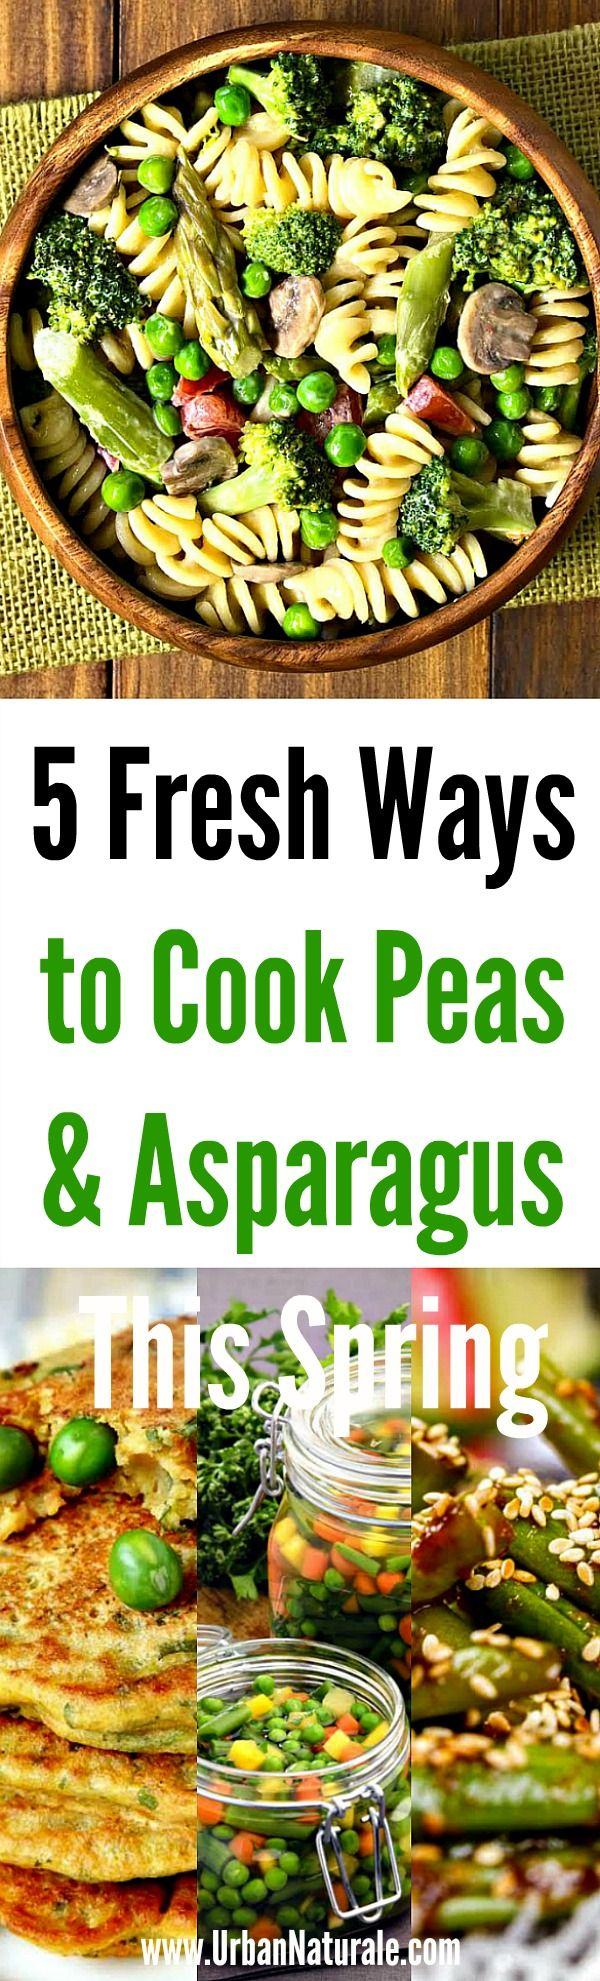 5 Fresh Ways to Cook Peas and Asparagus This Spring